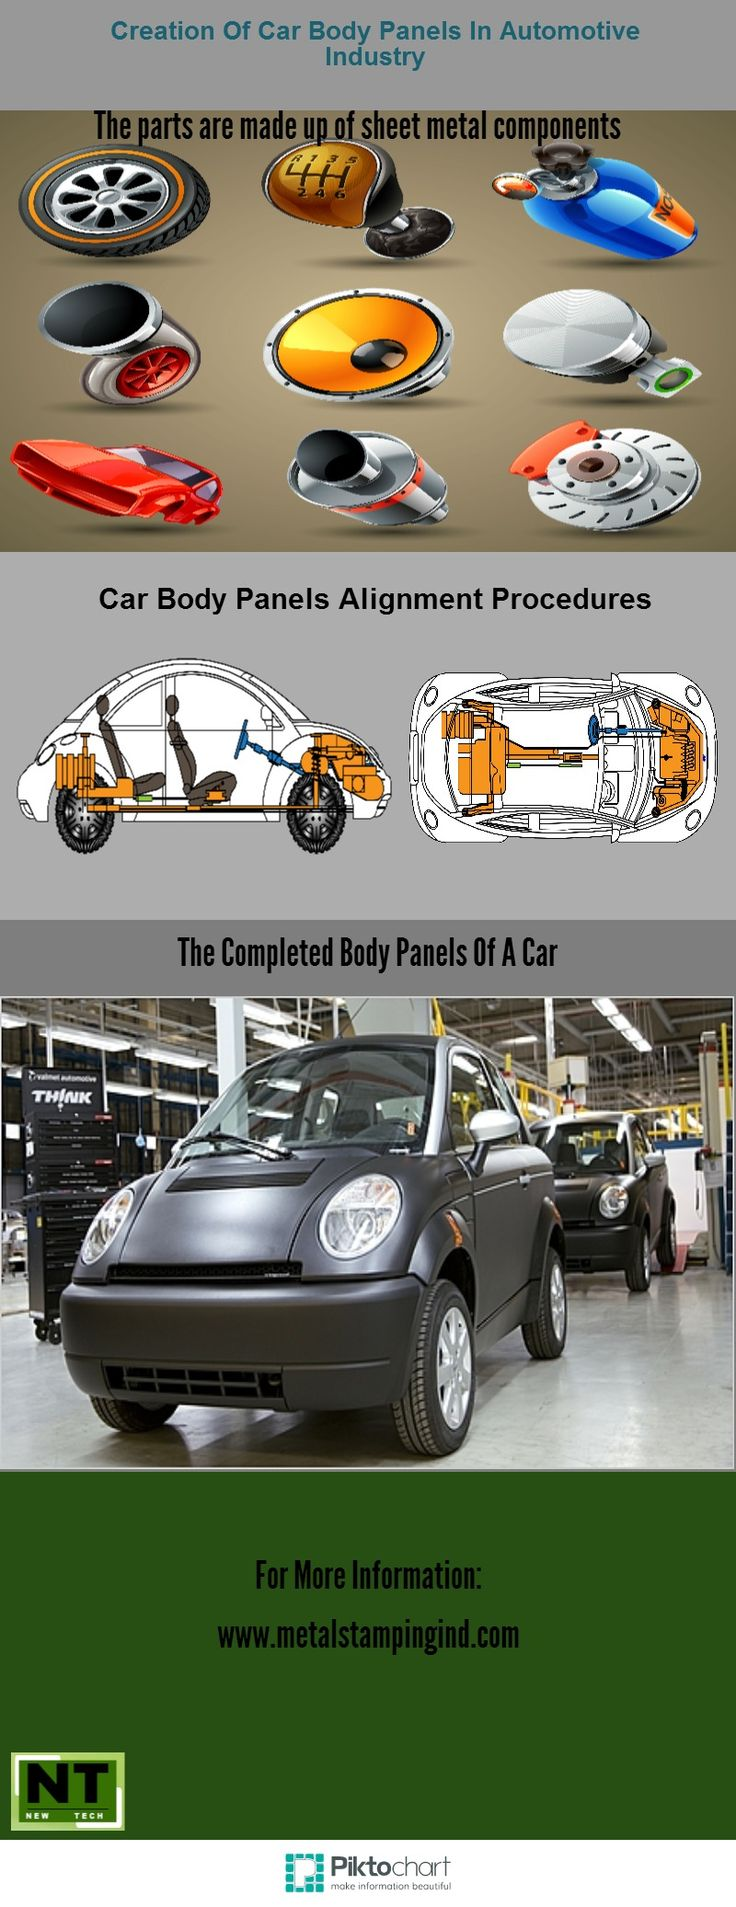 The info graphic image explains the creation of car body panels in automotive industry